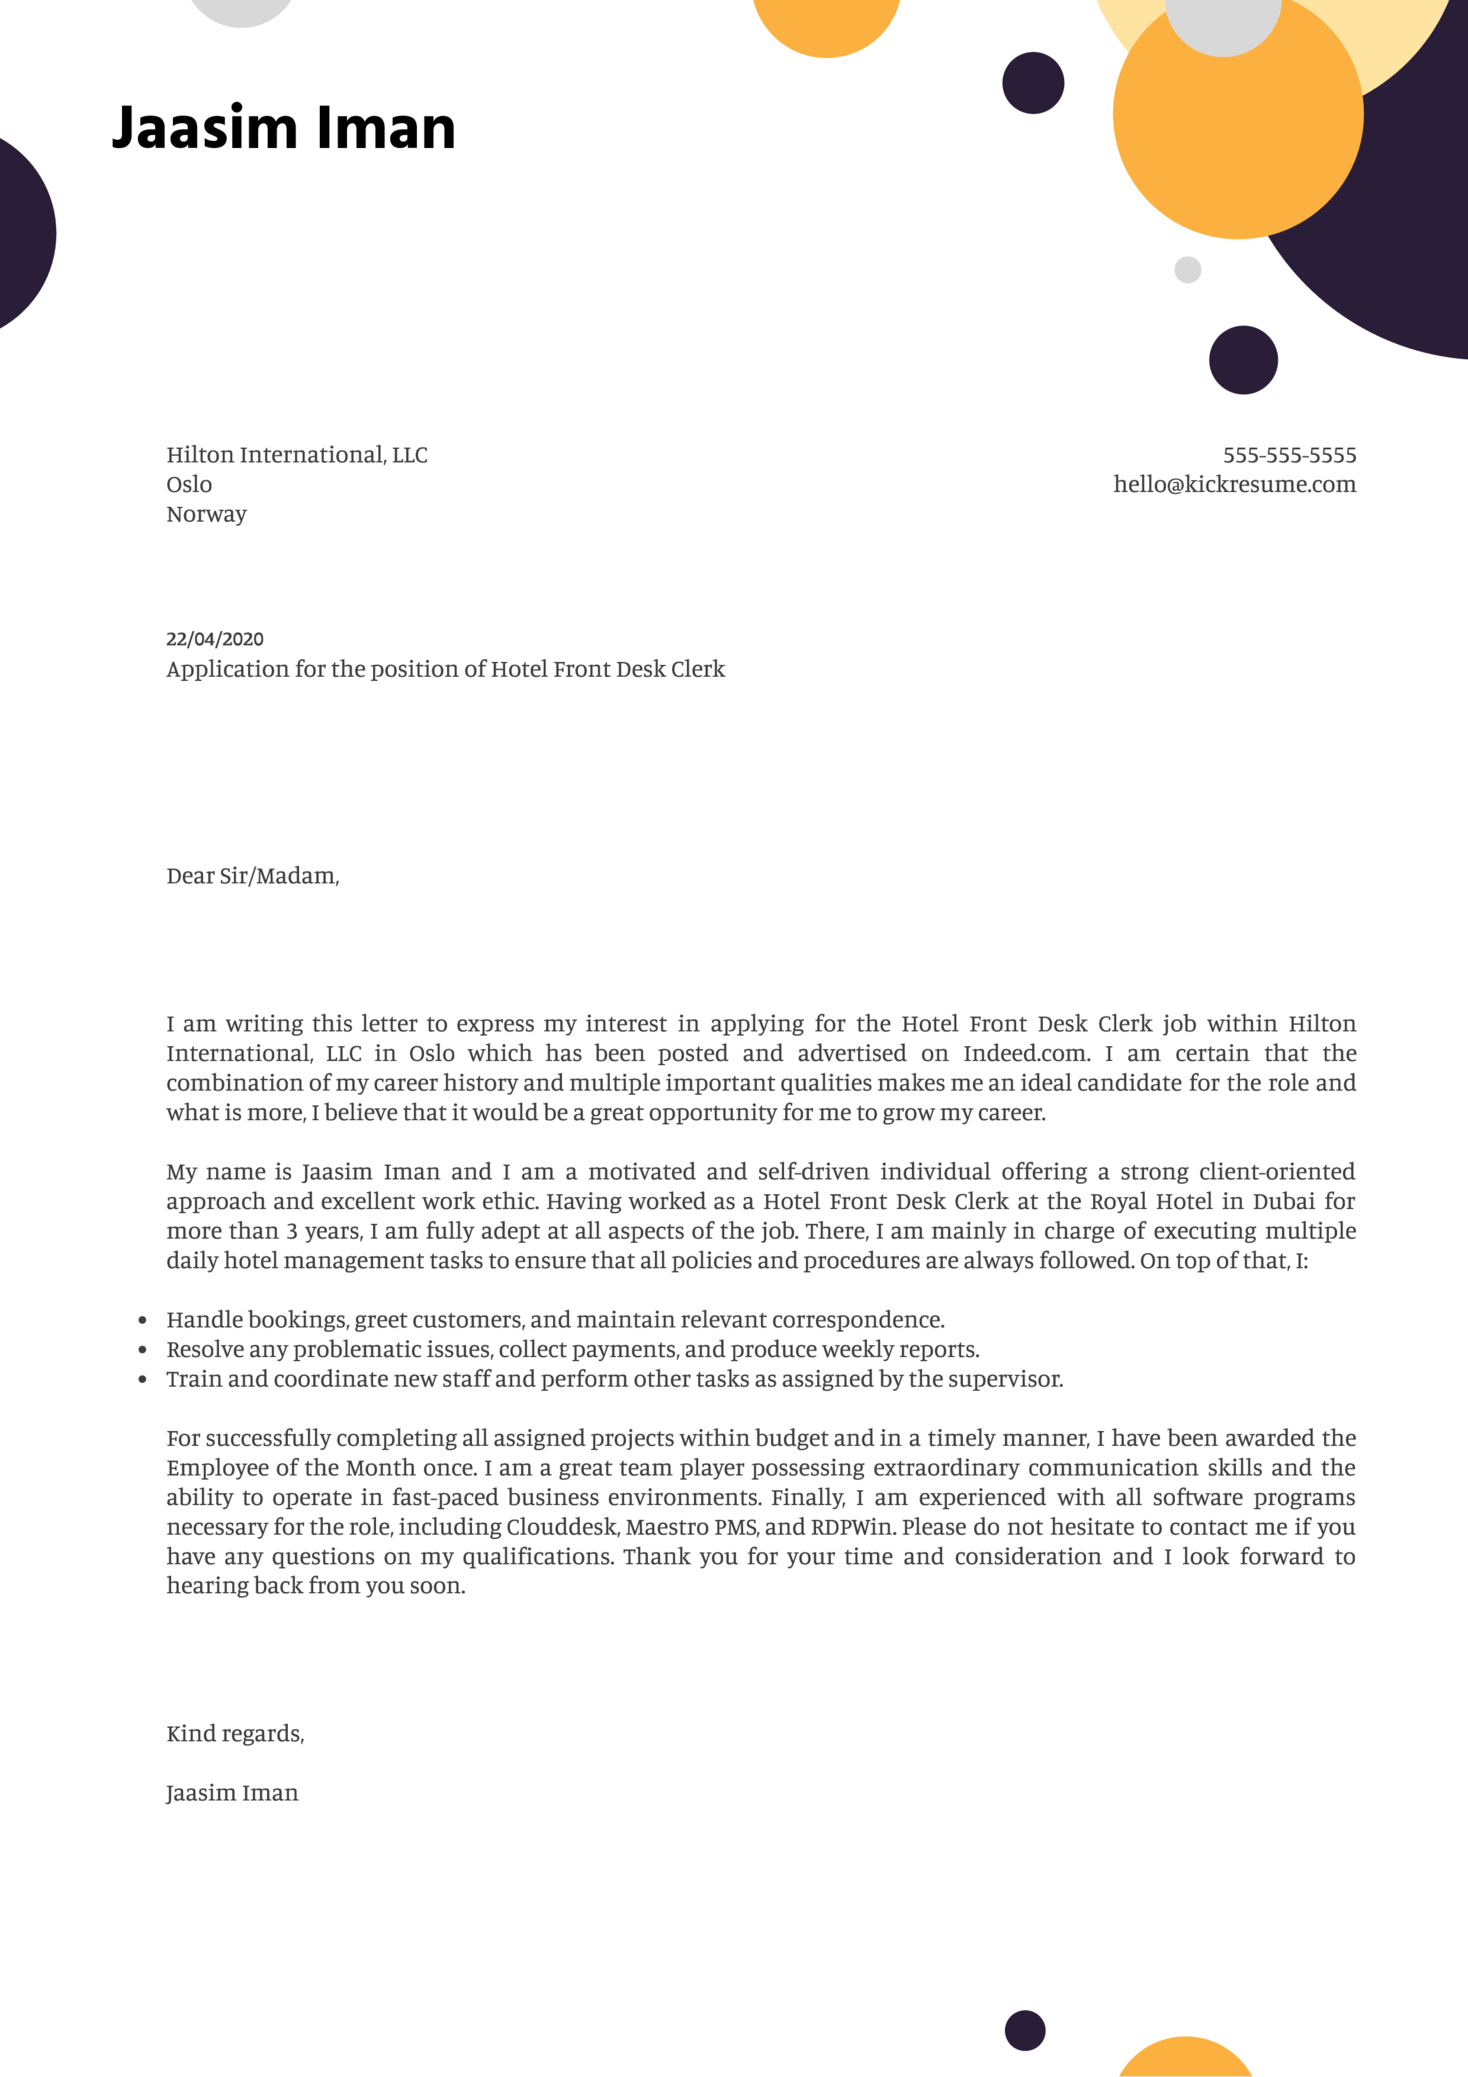 Cover Letter For A Hotel Job from s3-eu-west-1.amazonaws.com